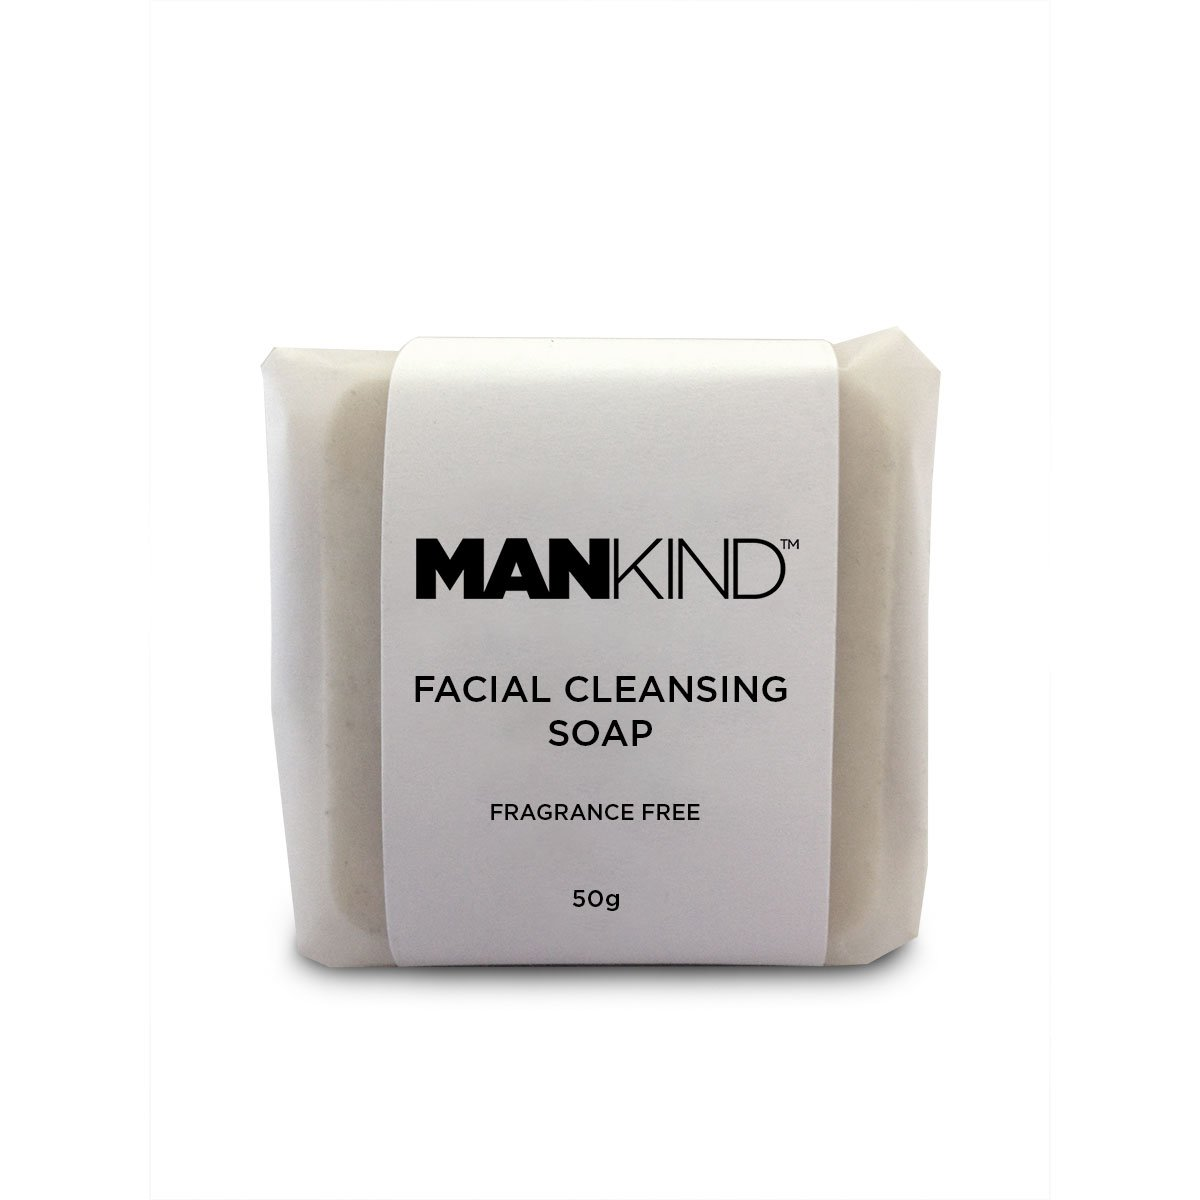 Face cleansing soap